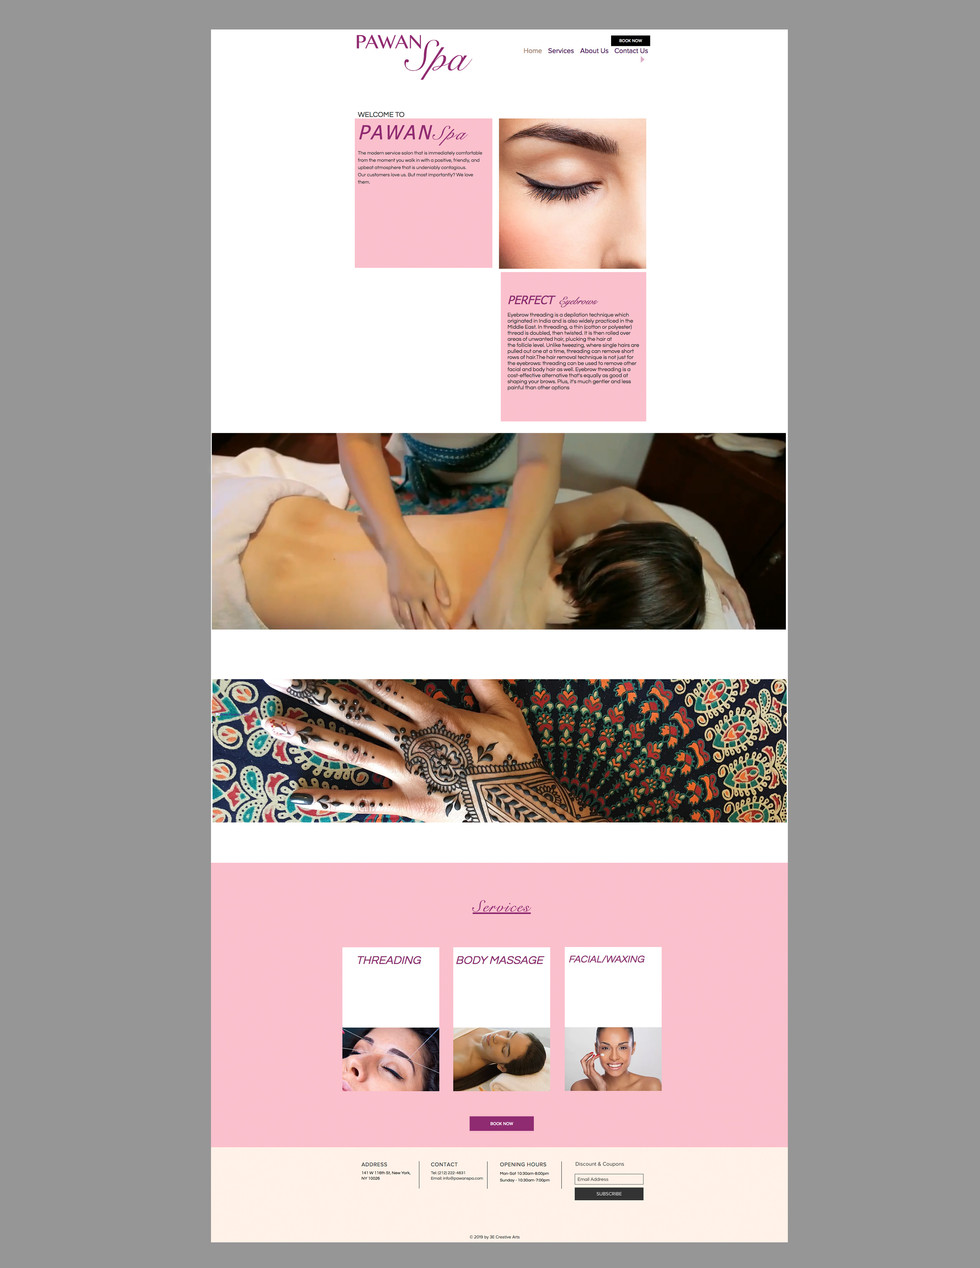 Pawan_Spa_web_layout_full_1.jpg